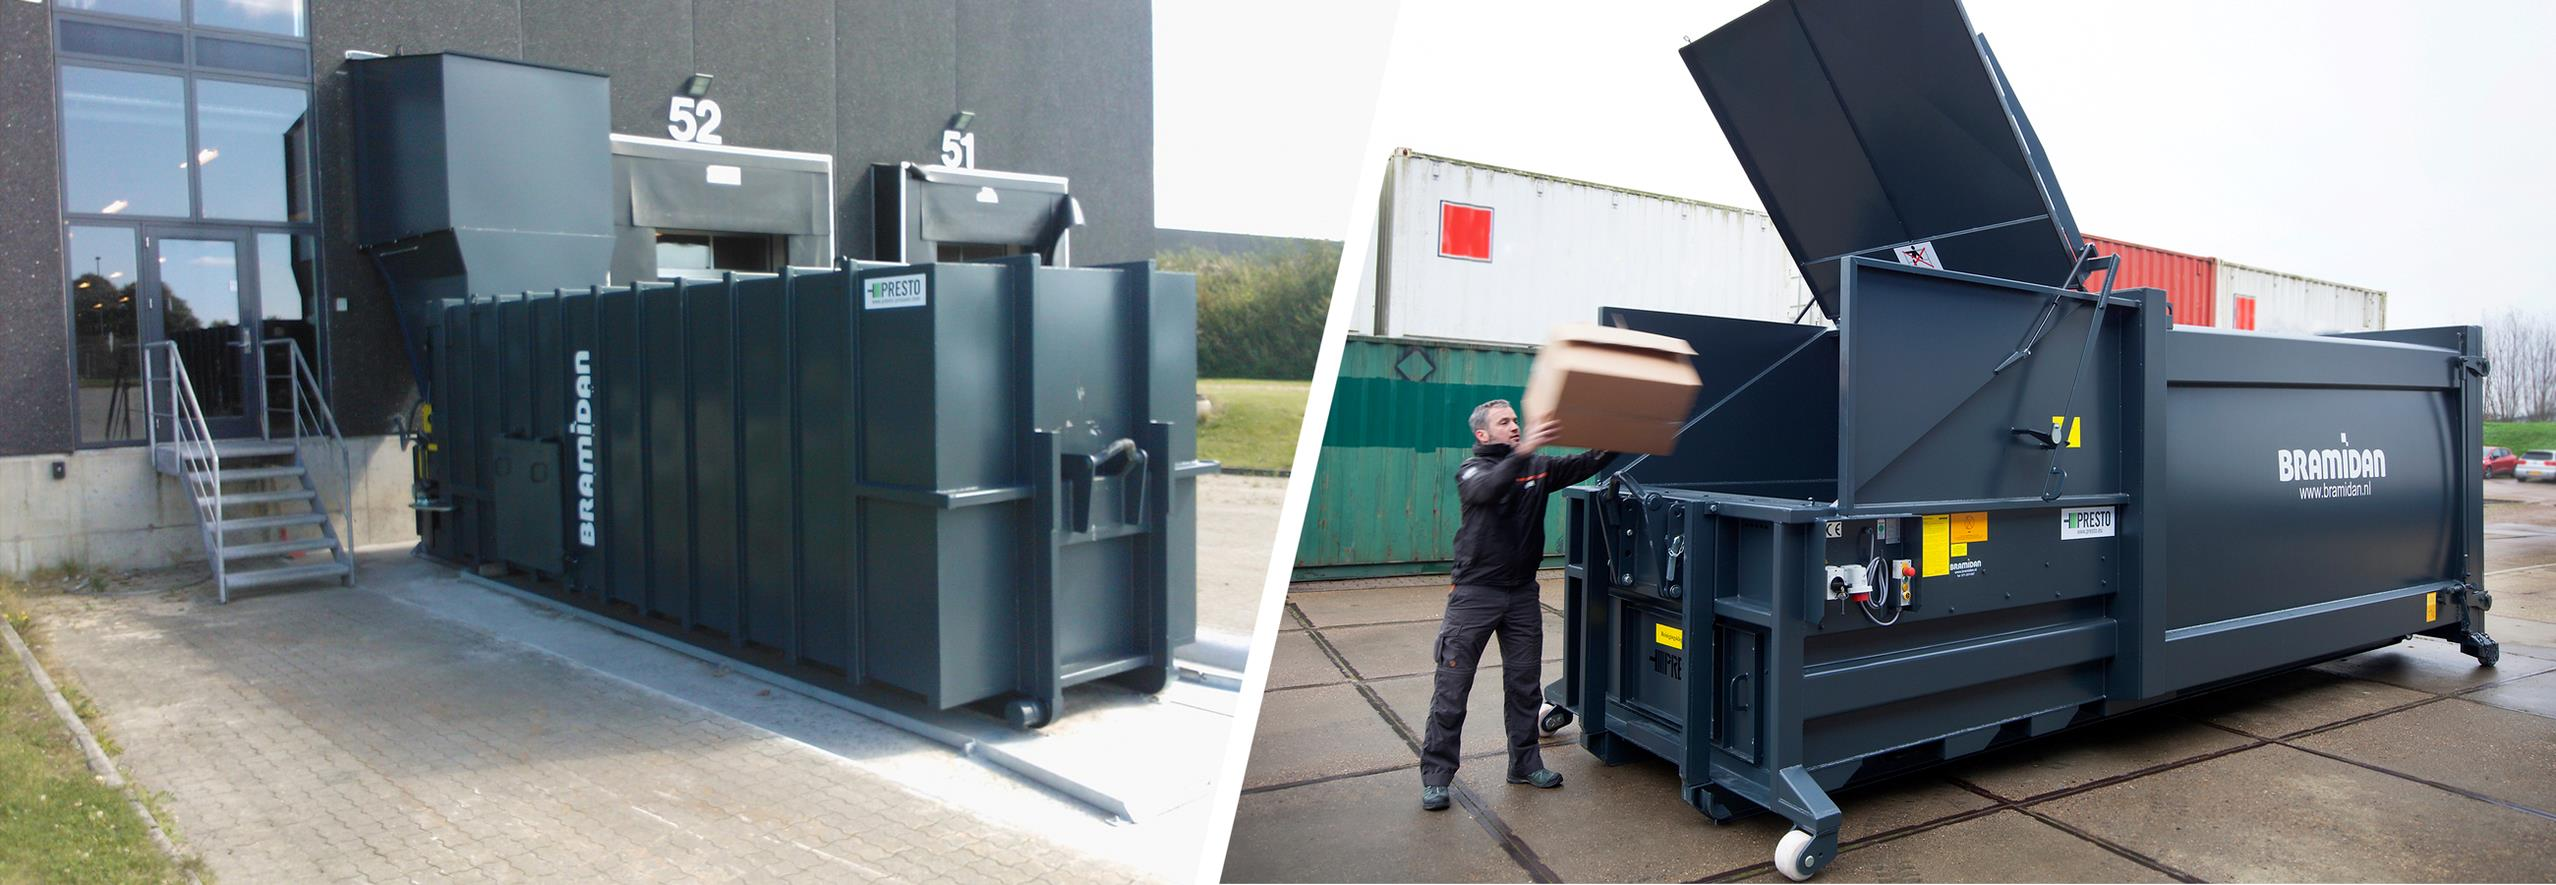 Compactors - for big waste volumes